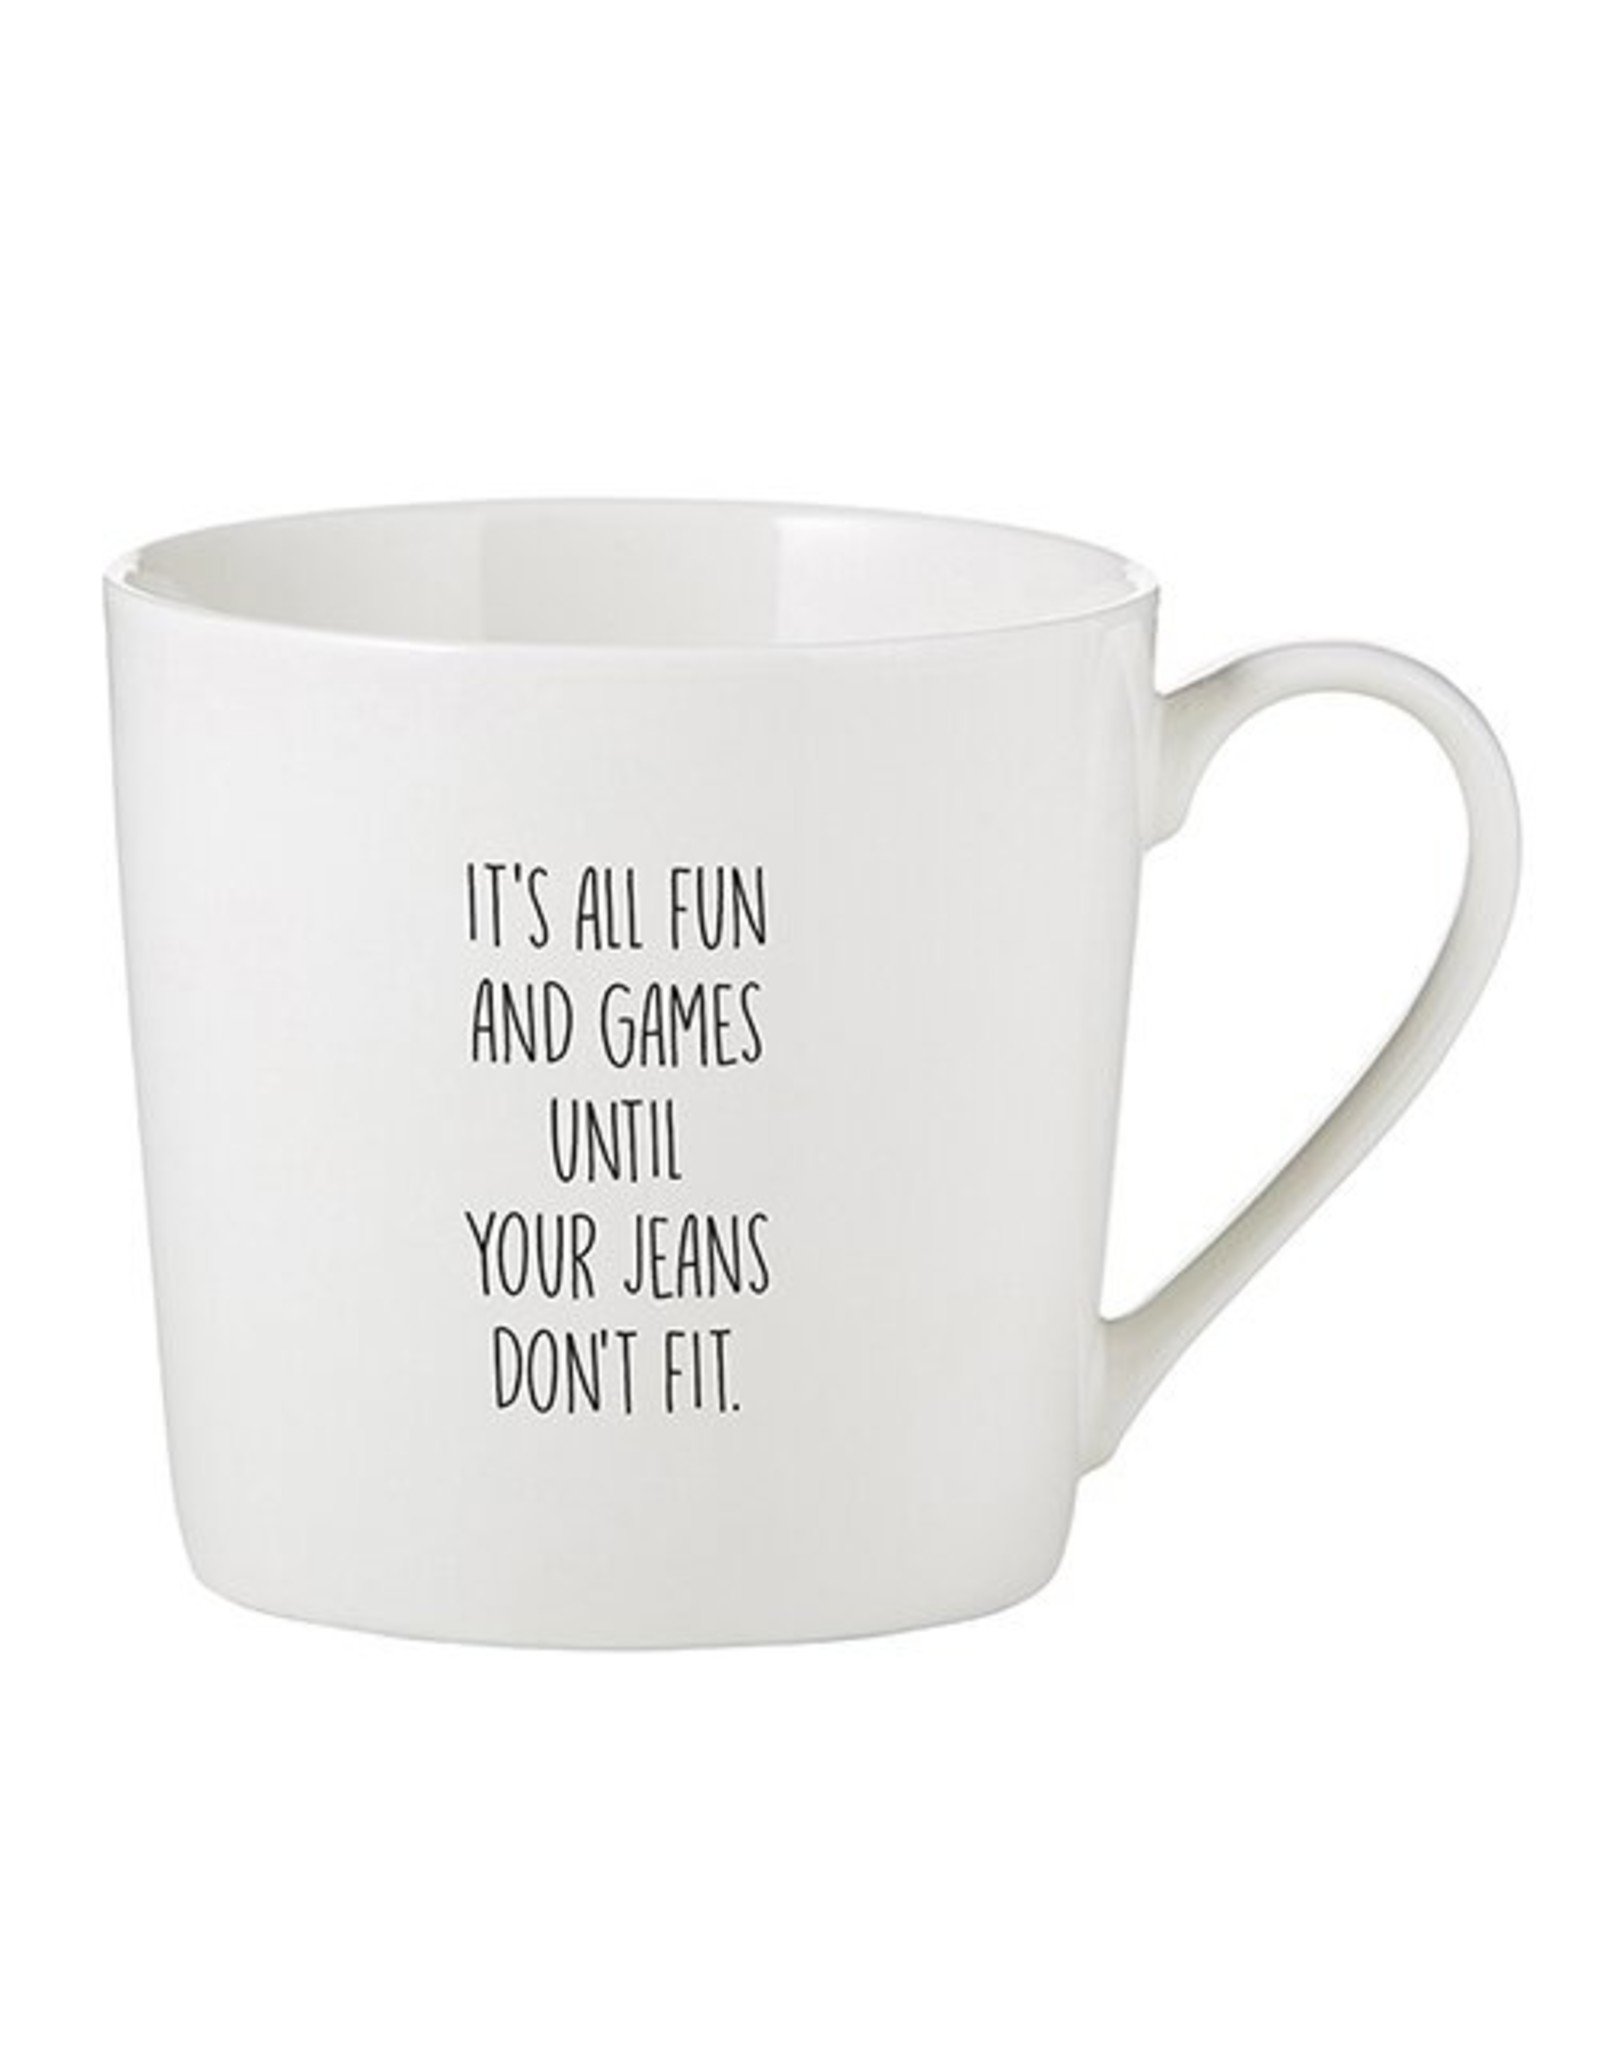 Lyla's: Clothing, Decor & More All Fun and Games Coffee Mug